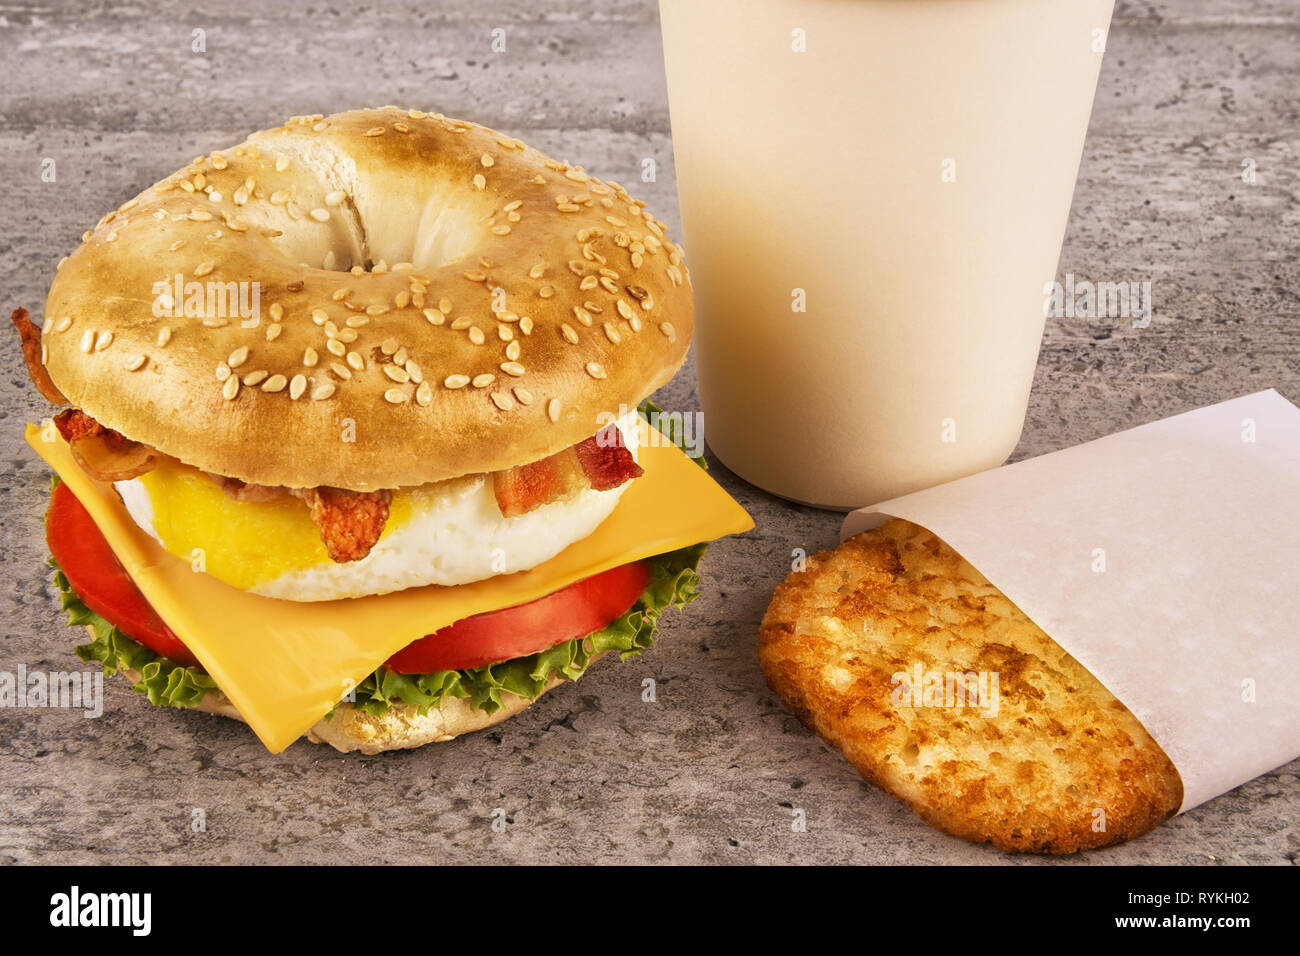 Breakfast Sandwich With Coffee And Hash Brown On Concrete Table Bagle Egg Cheese And Bacon Stock Photo Alamy